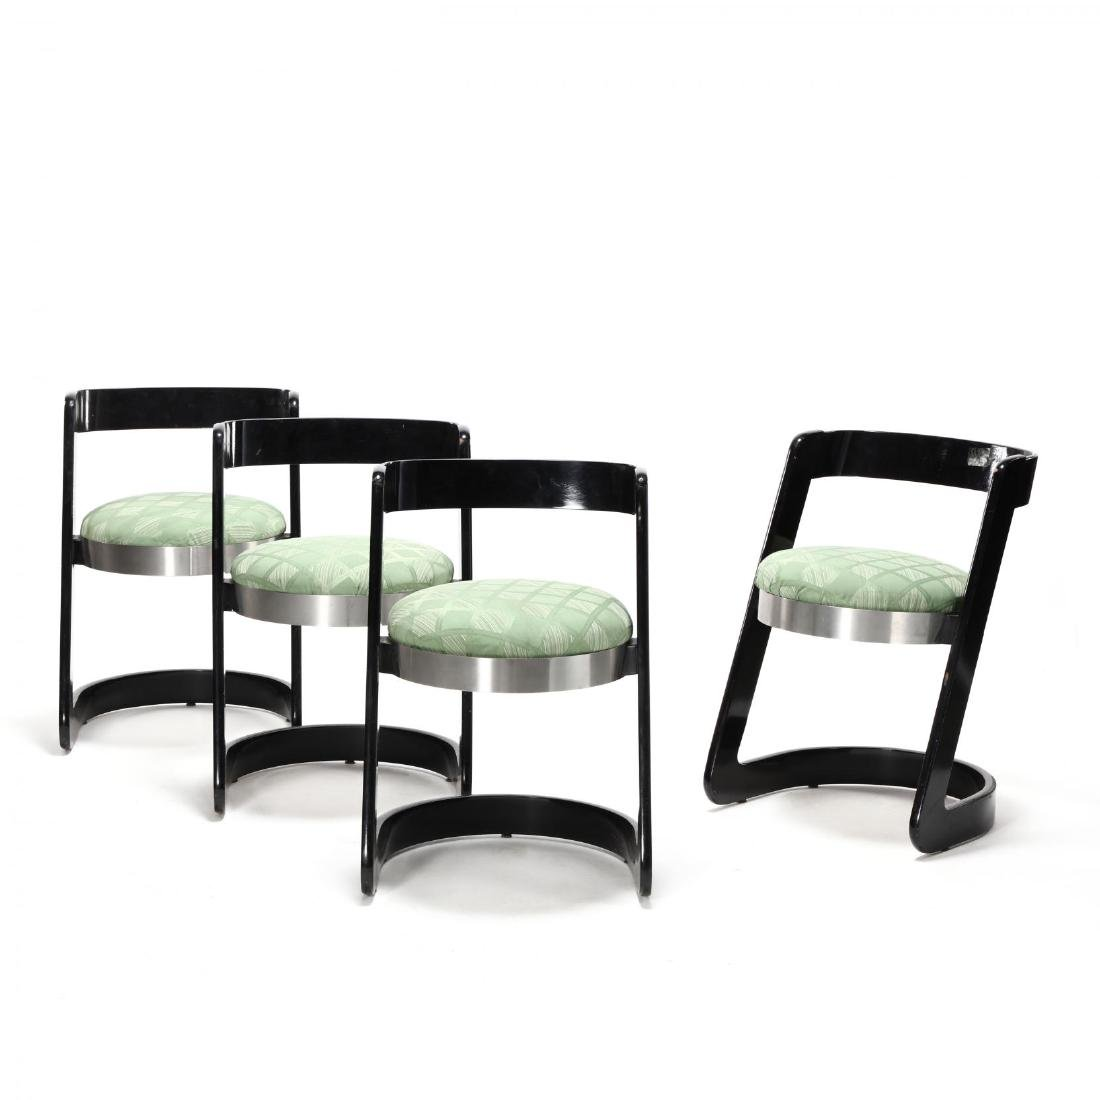 Willy Rizzo (Italy, 1928-2013), Set of Four Chairs